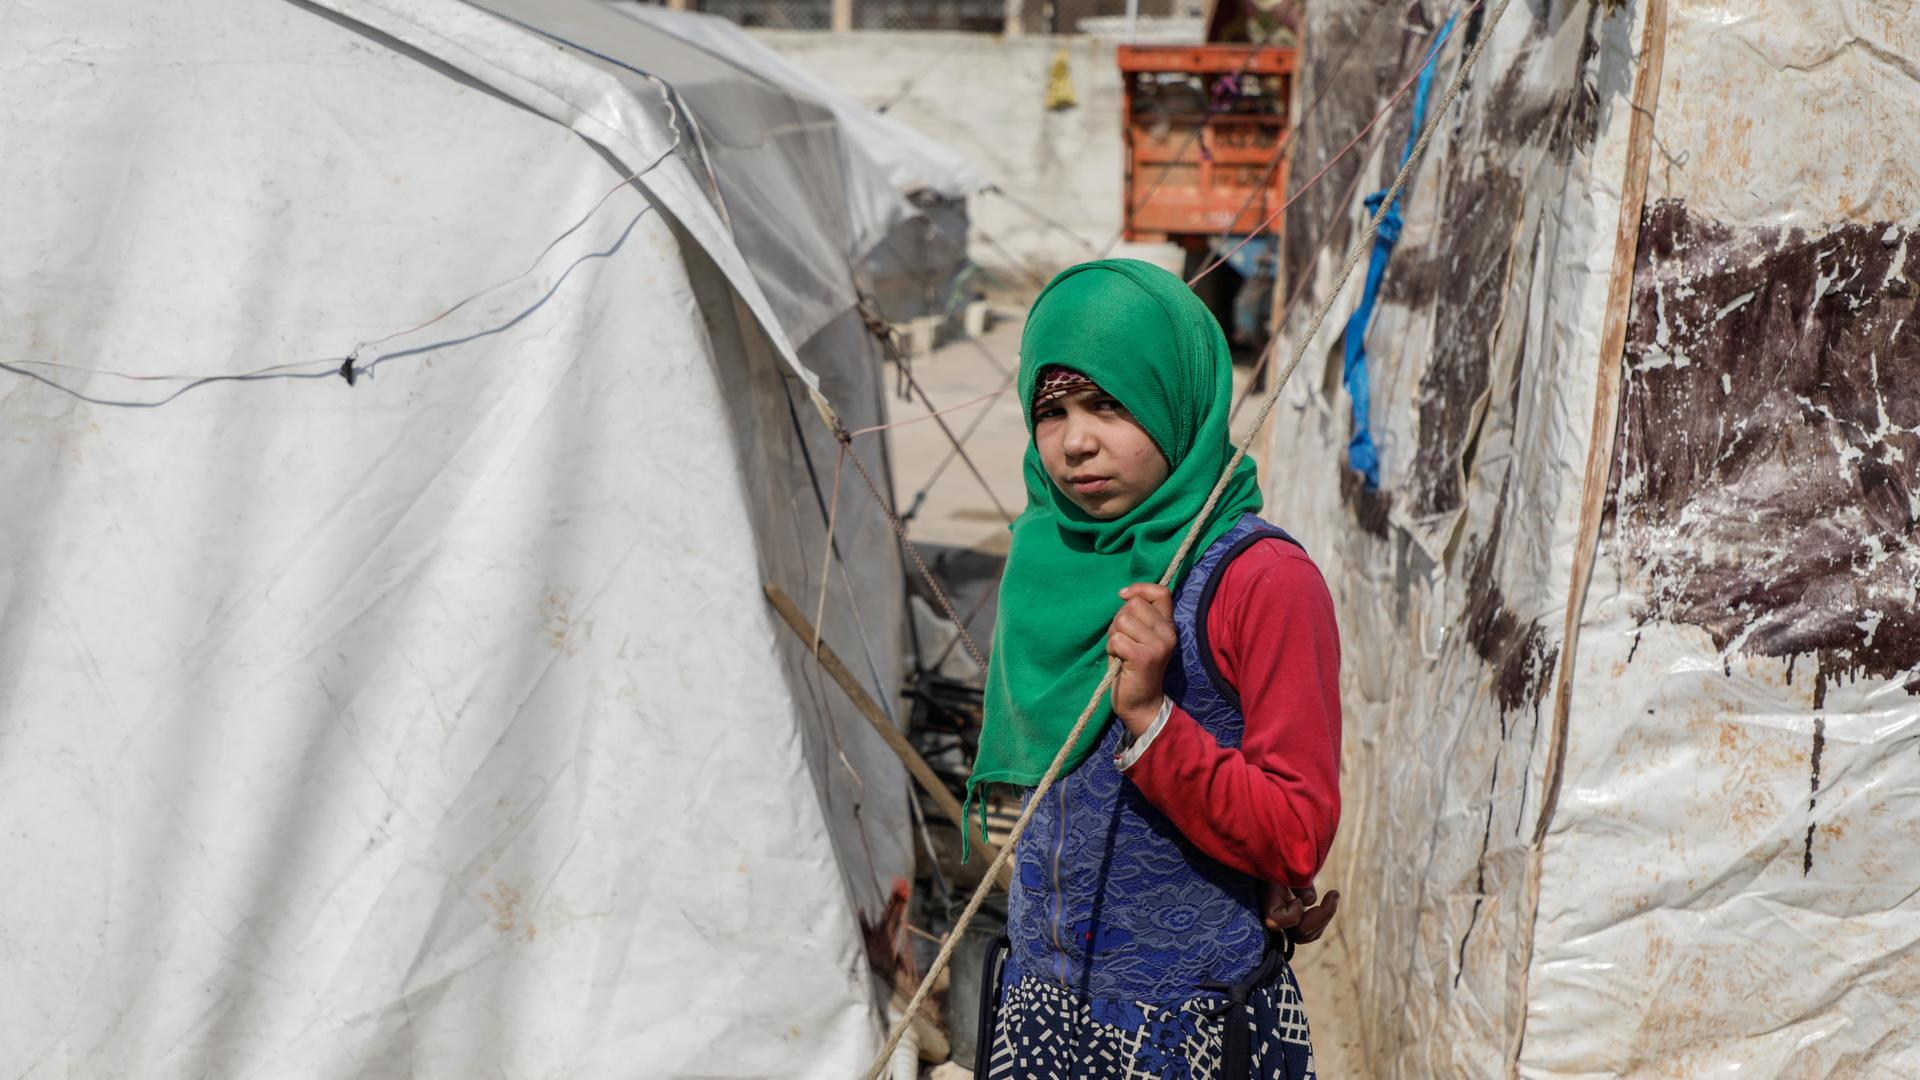 Syrian girl stands in front of her uncle's tent in Idlib countryside